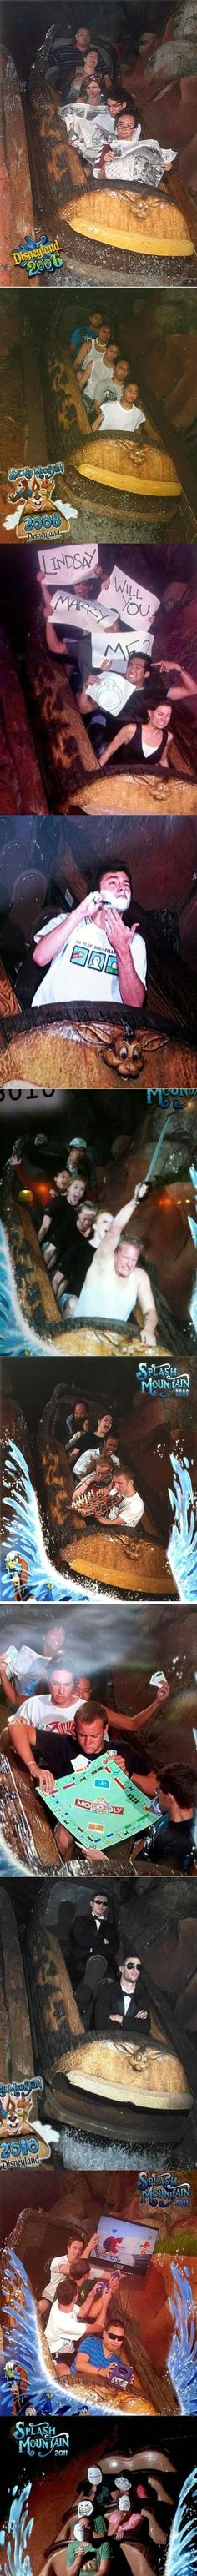 Best of Disneyland's Splash Mountain. I am inspired to do this next time!: